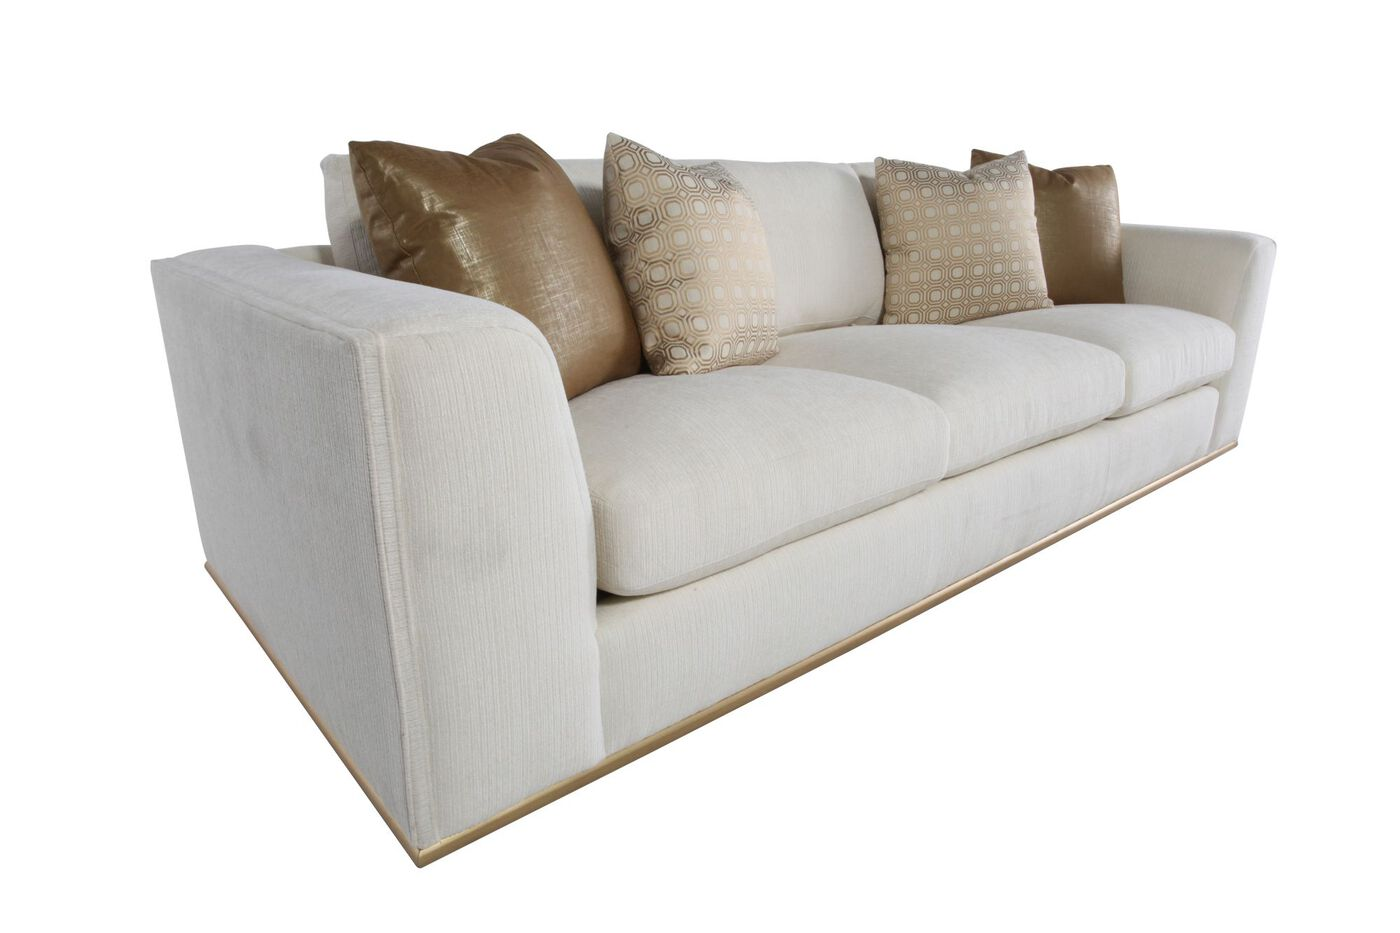 Contemporary Low Profile 107 5 Sofa In Cream Mathis Brothers Furniture